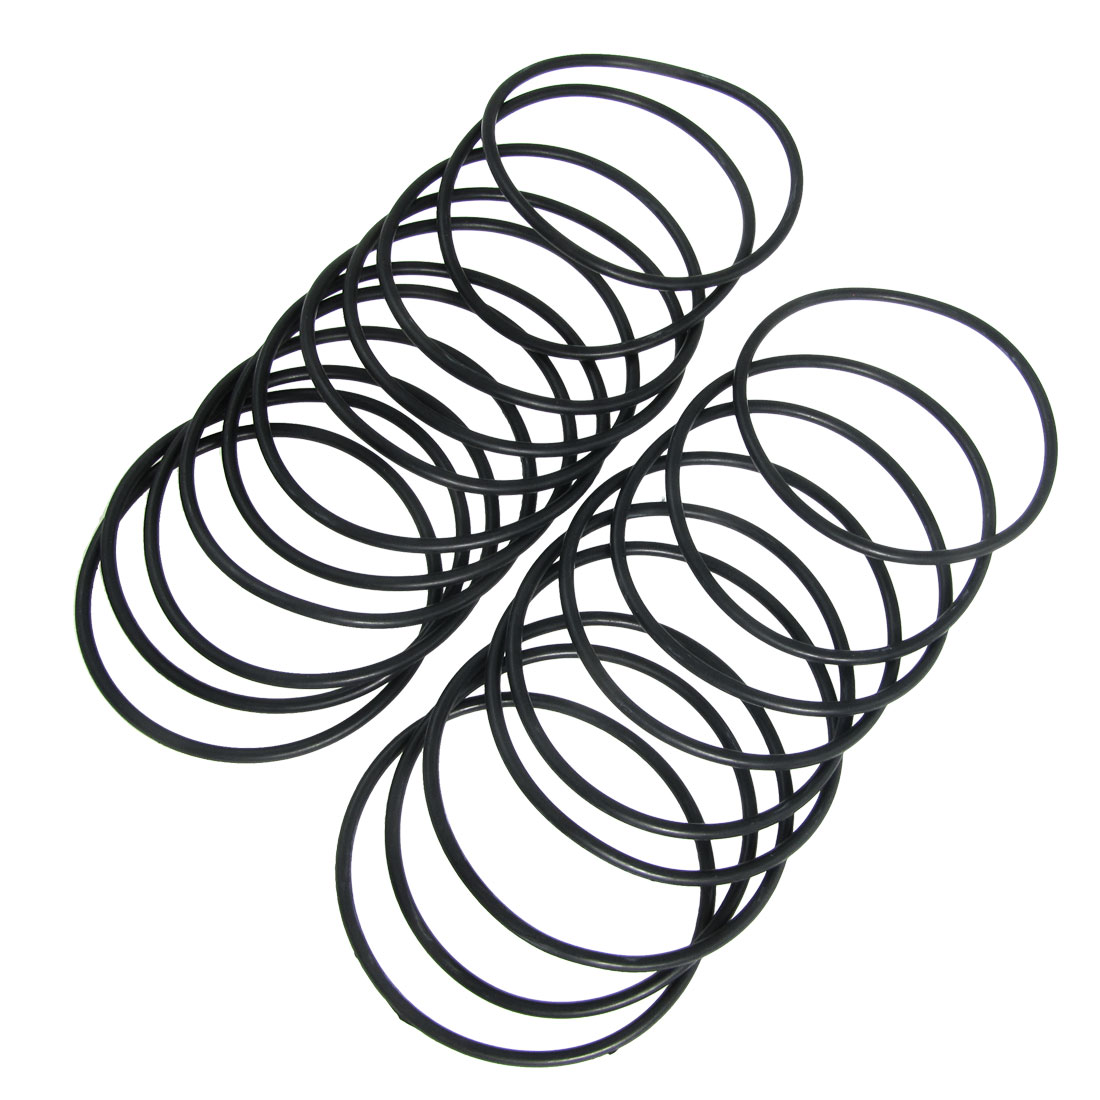 20 Pcs Industrial Flexible Rubber O Ring Seal Gasket 73mm x 80mm x 3.5mm